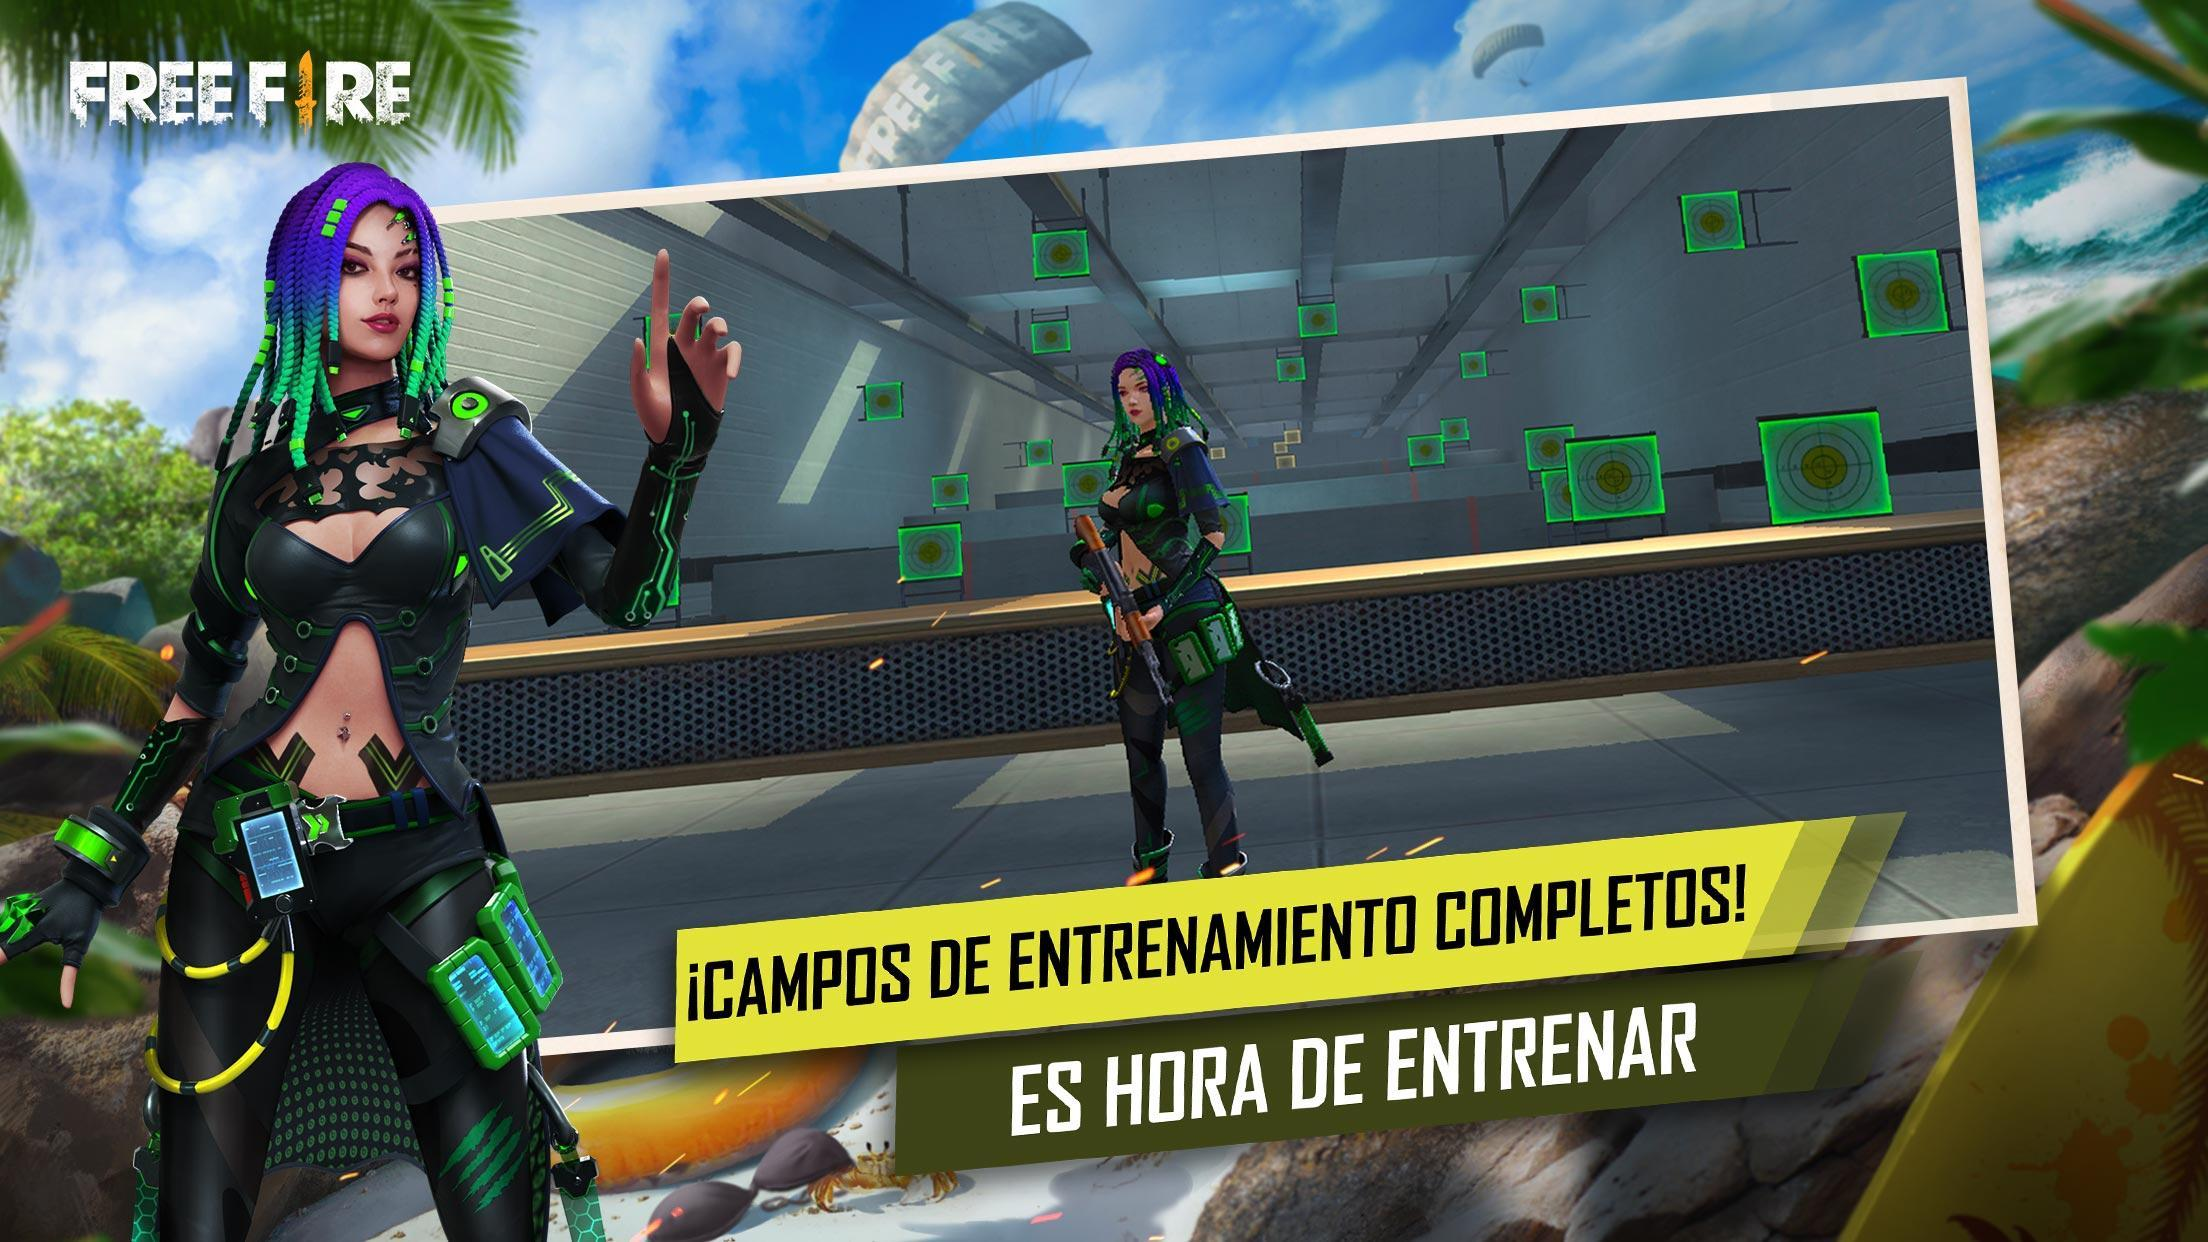 free fire descargar gratis para android ultima version 2019